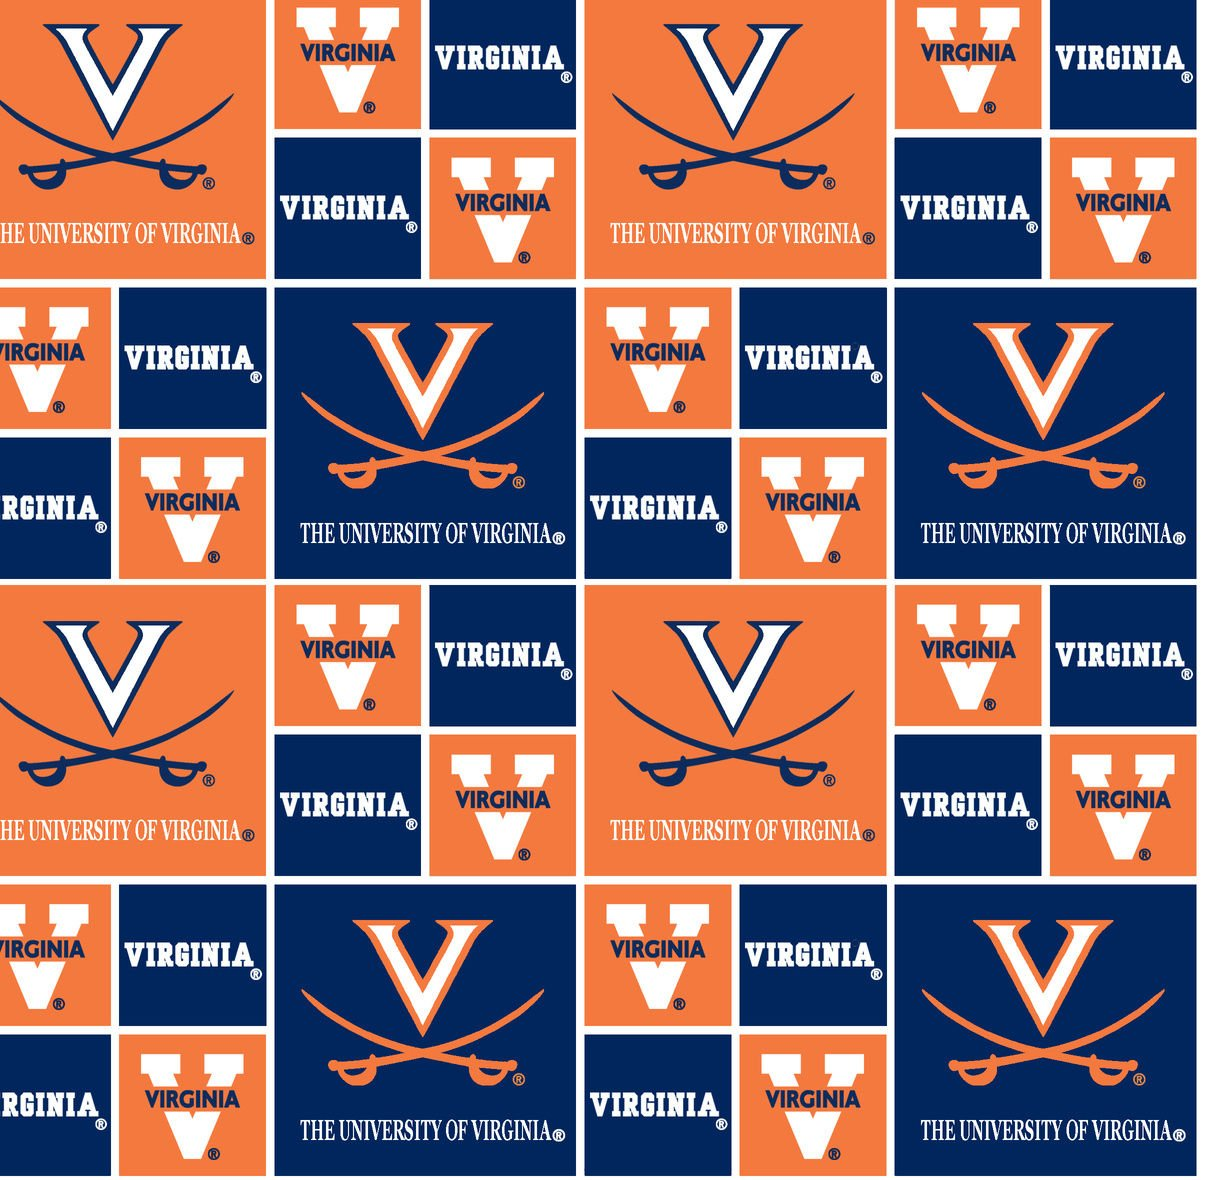 University of Virginia Cotton Fabric - Sold By the Yard by Field's Fabrics   B005PYLKY6